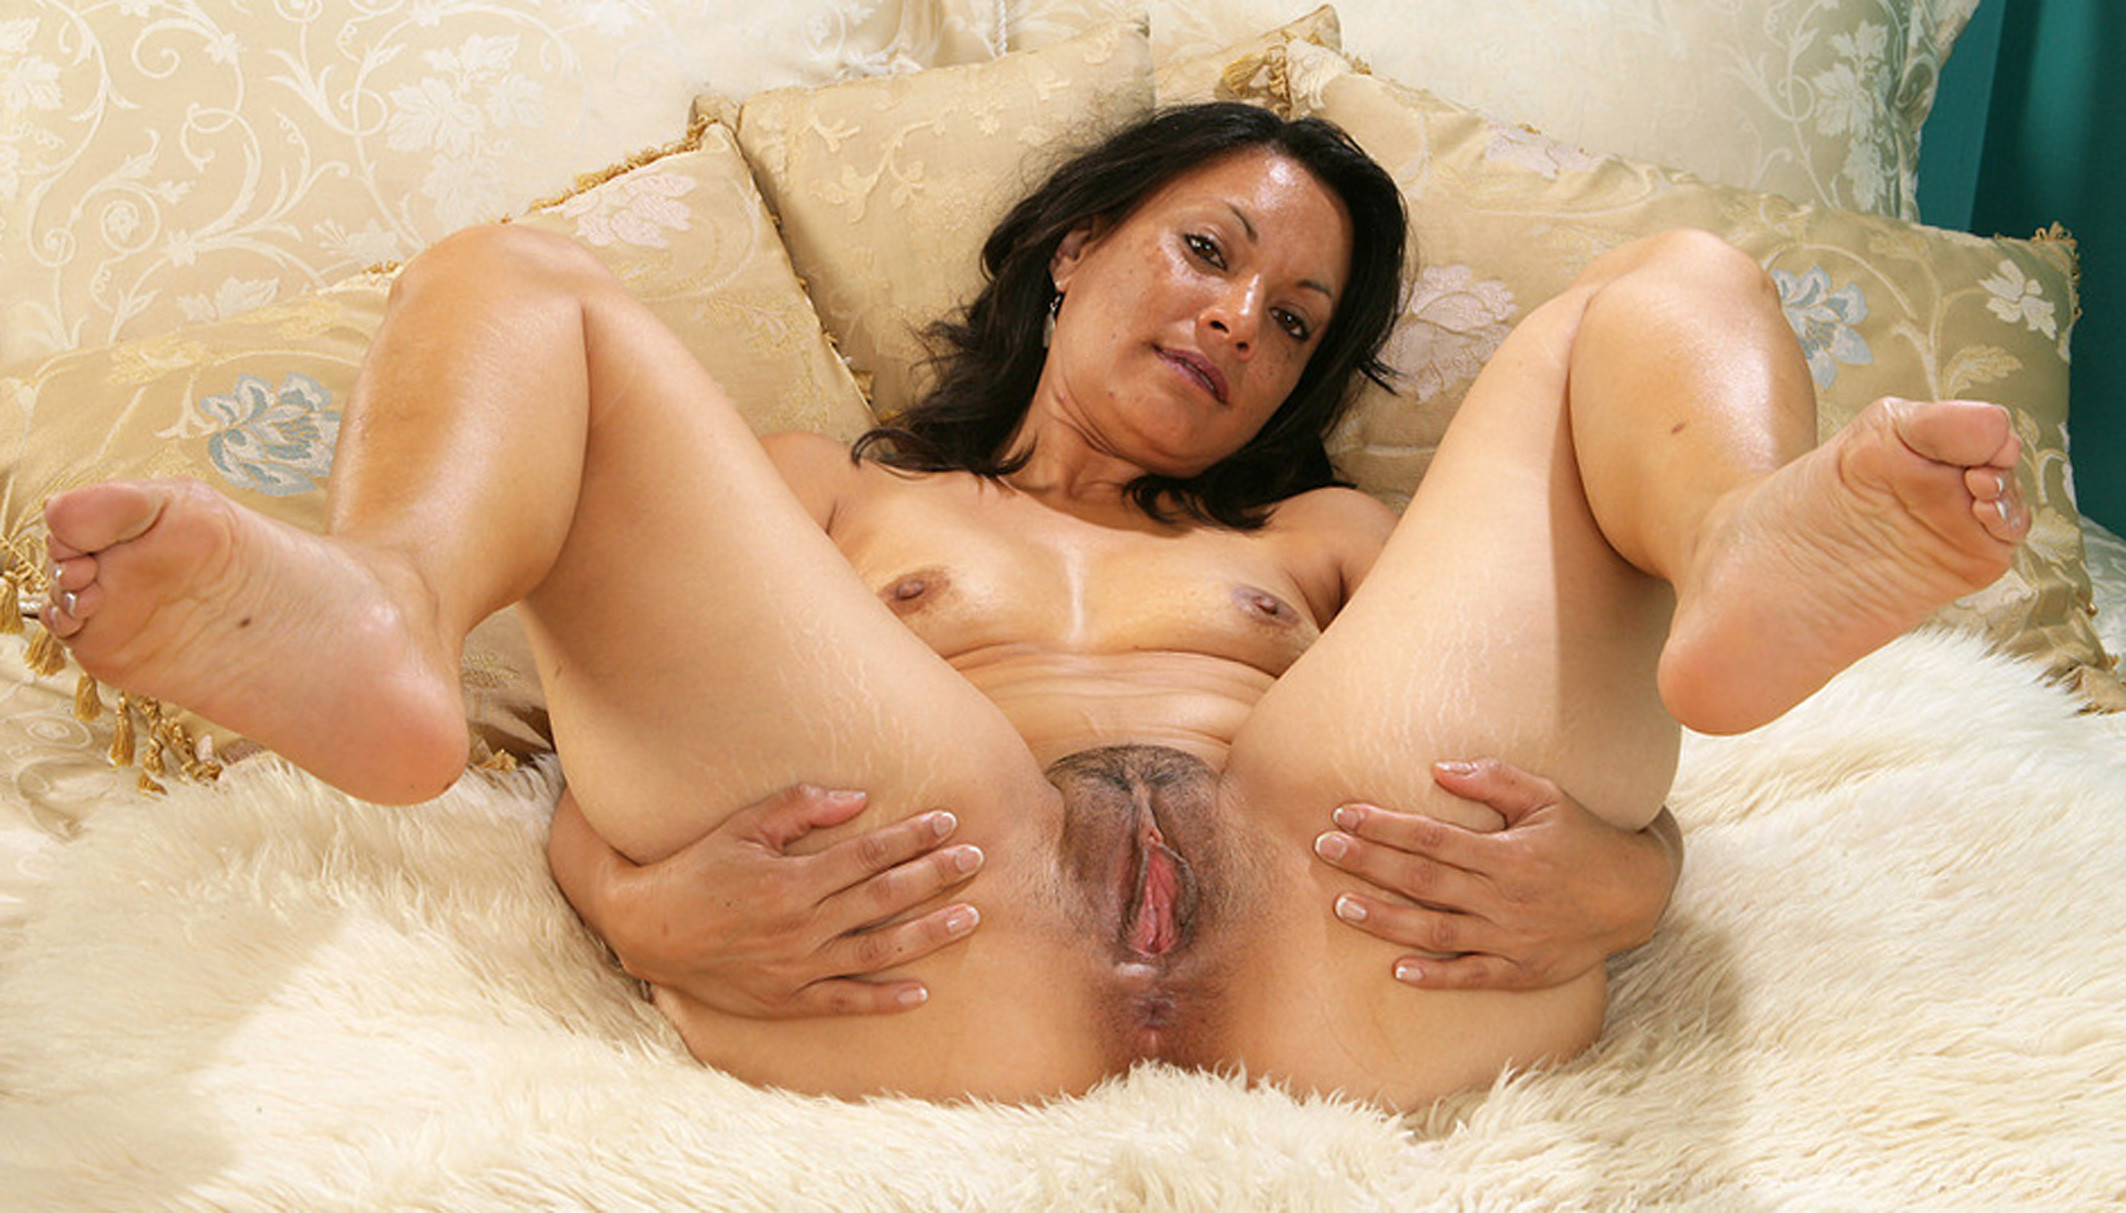 sg sex mature sexy hot body nackt